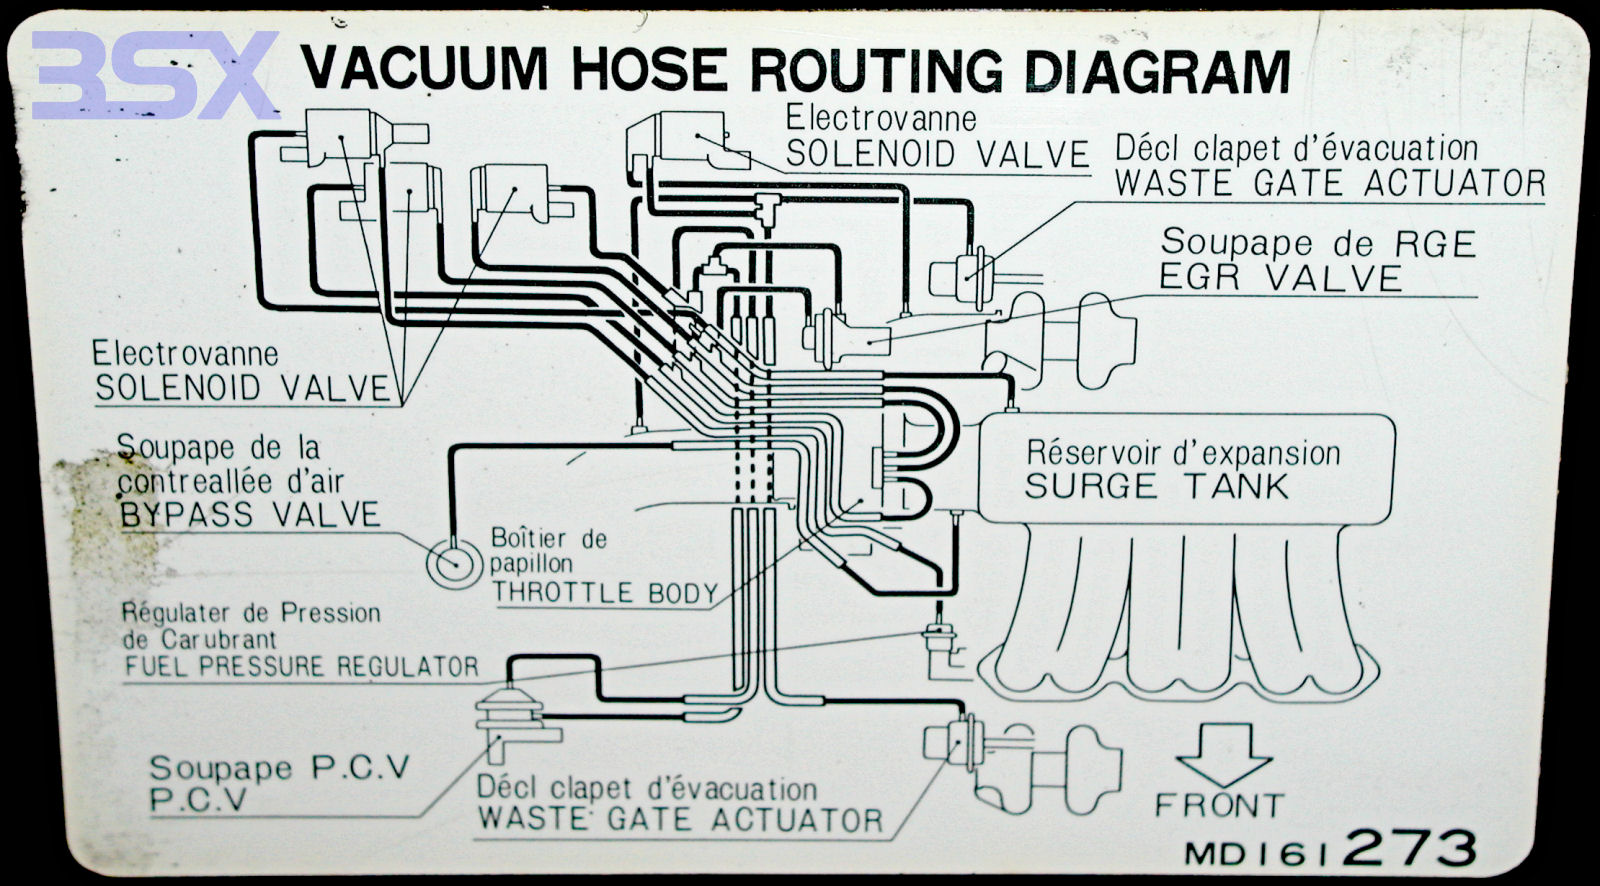 Car Engine Vacuum Line Basics Repair Leak Leaks Piping Layout Wikipedia Diagram Block